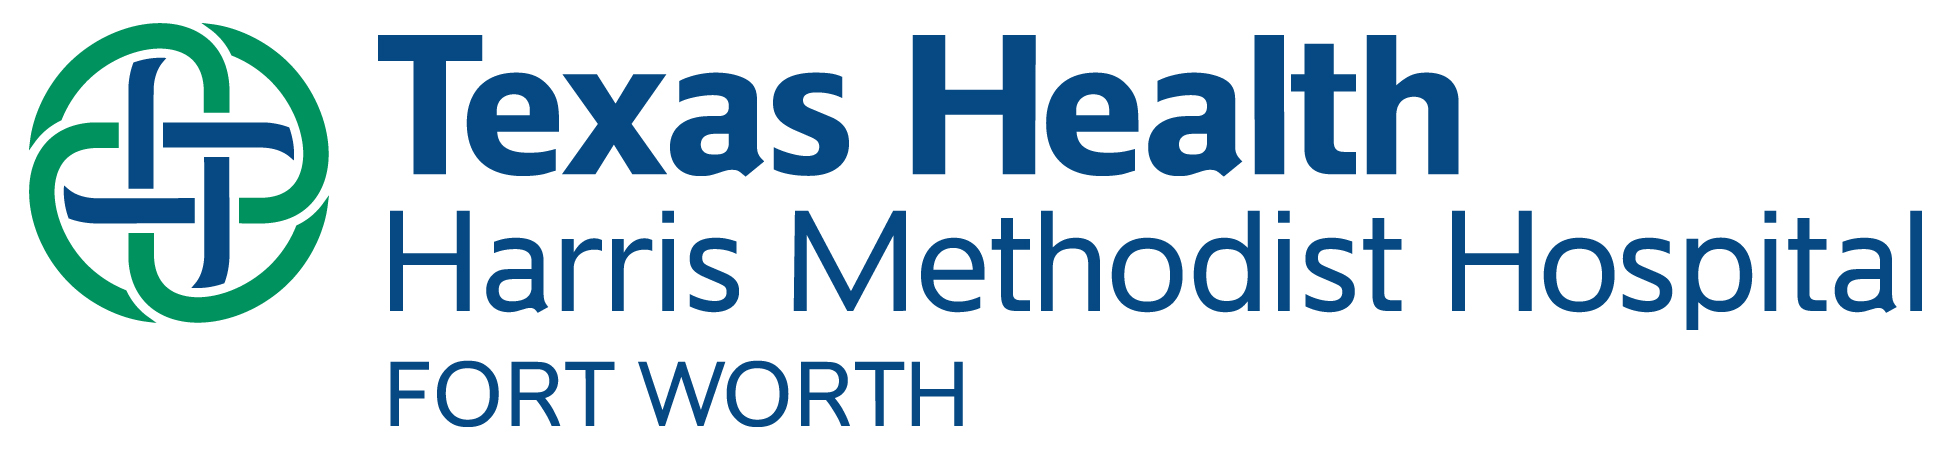 Texas Health Harris Methodist Hospital FTW Logo